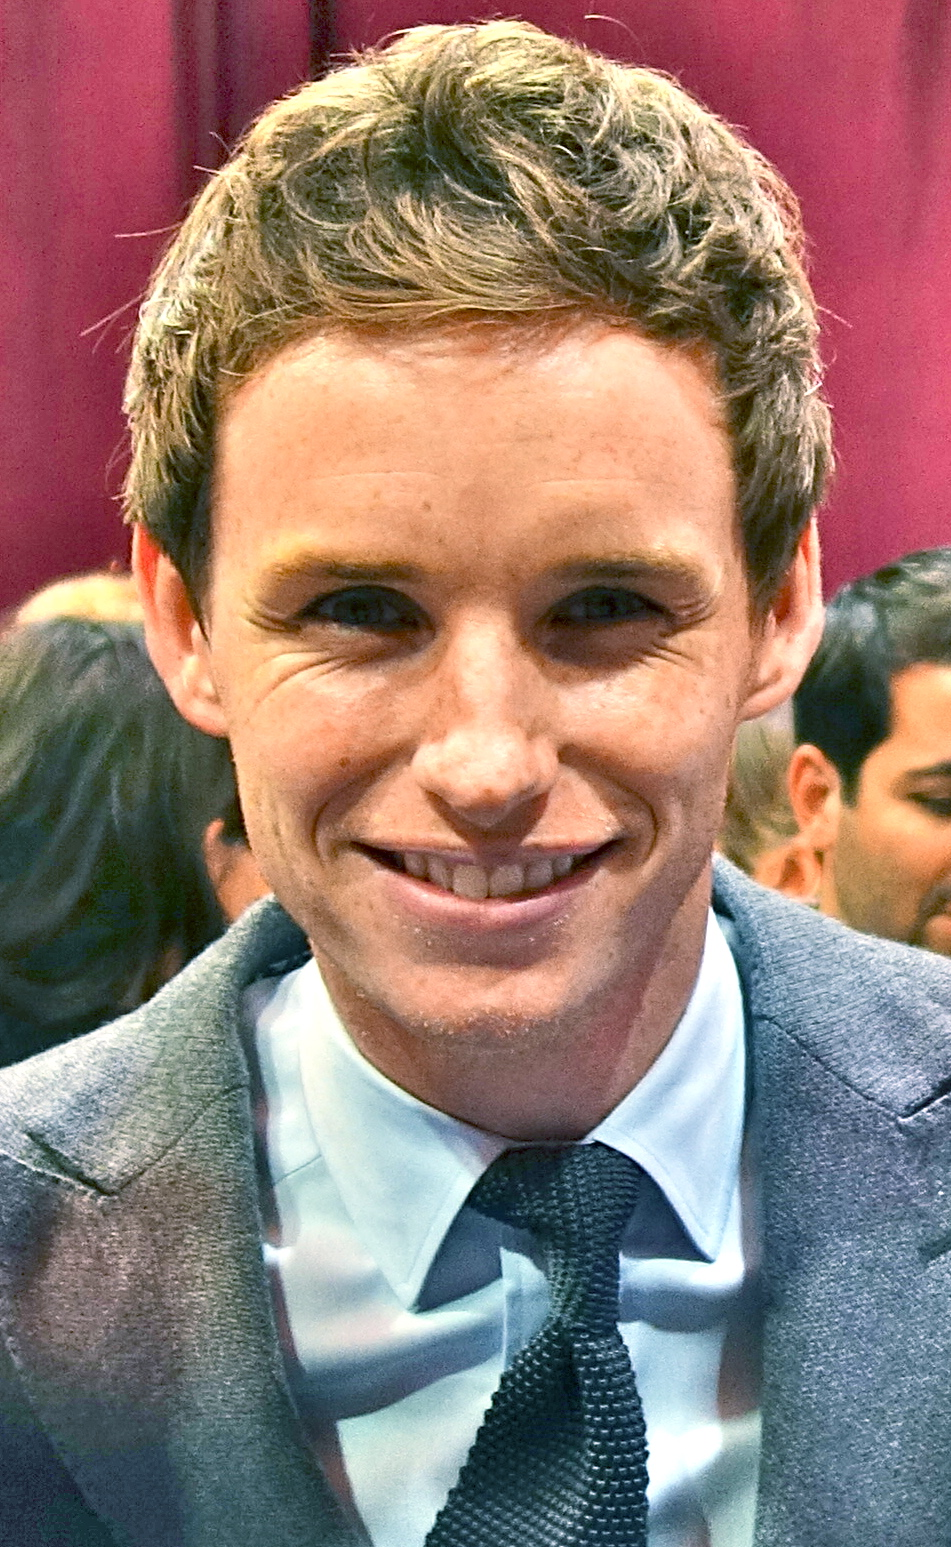 File Eddie Redmayne October 2014 as well Gene Wilder Willy Wonka Young Frankenstein Interview Watch 1201702561 as well Scarpe Timberland Bambino Prezzi likewise Filmplakat together with An Honest Portrayal Of Honest Abe Oscar Winning Best Actor. on oscar film